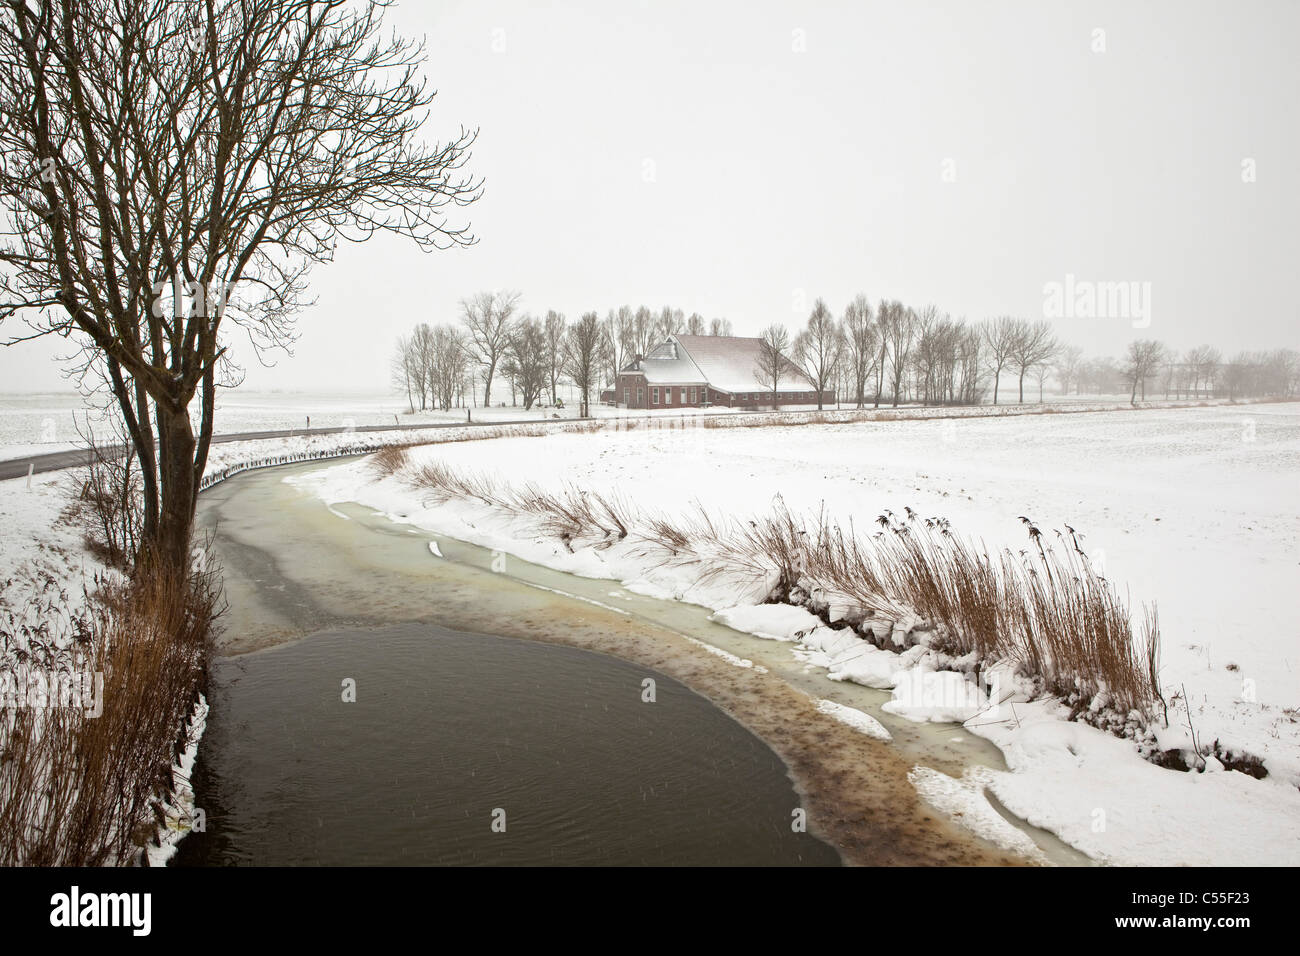 The Netherlands, Usquert, farm and canal in snow. - Stock Image